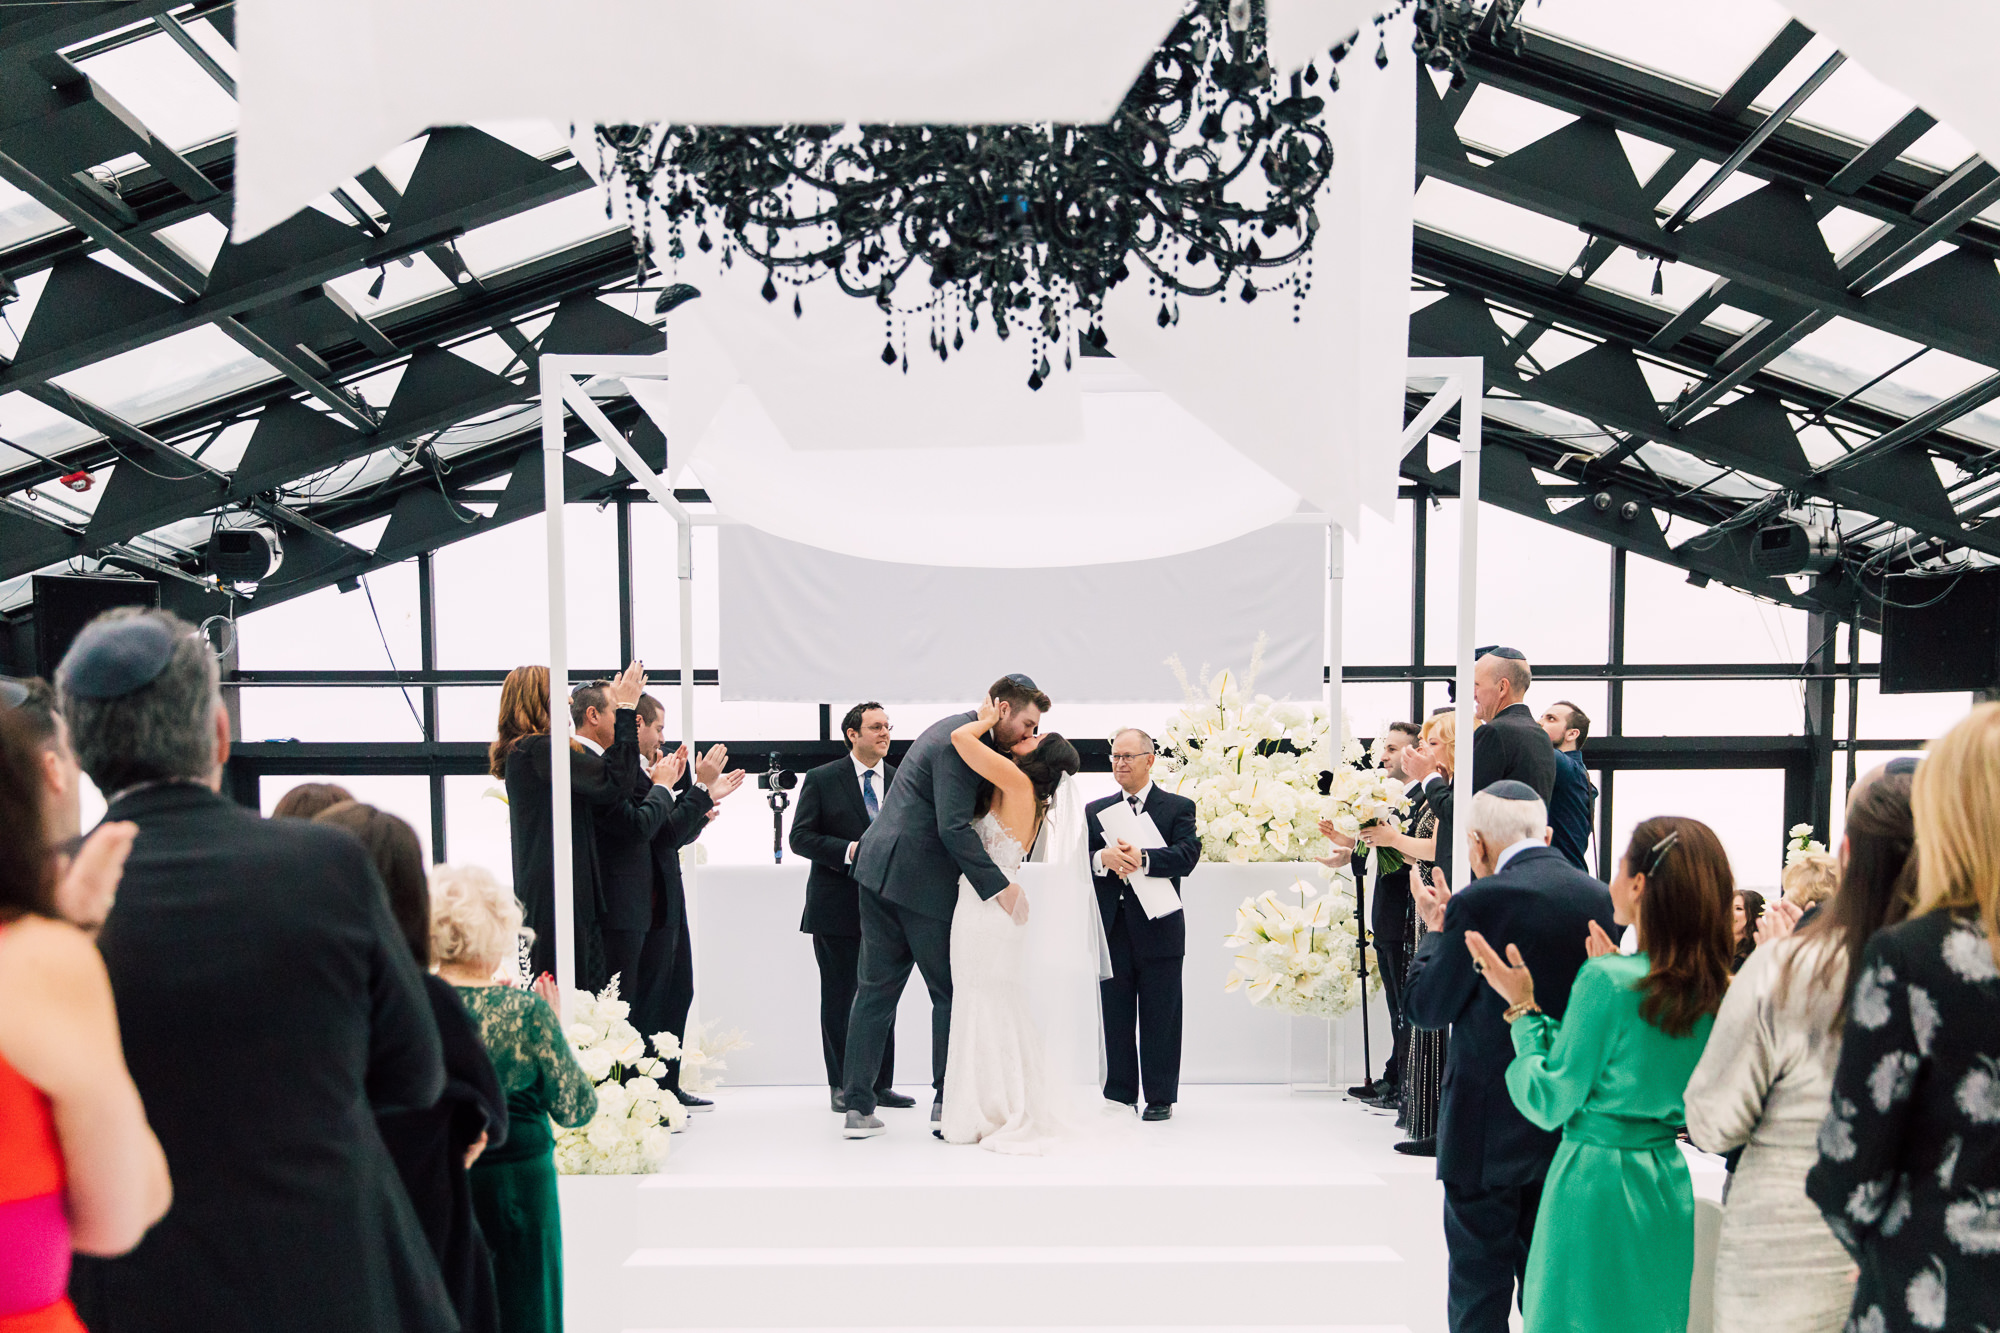 edgy chuppah wedding